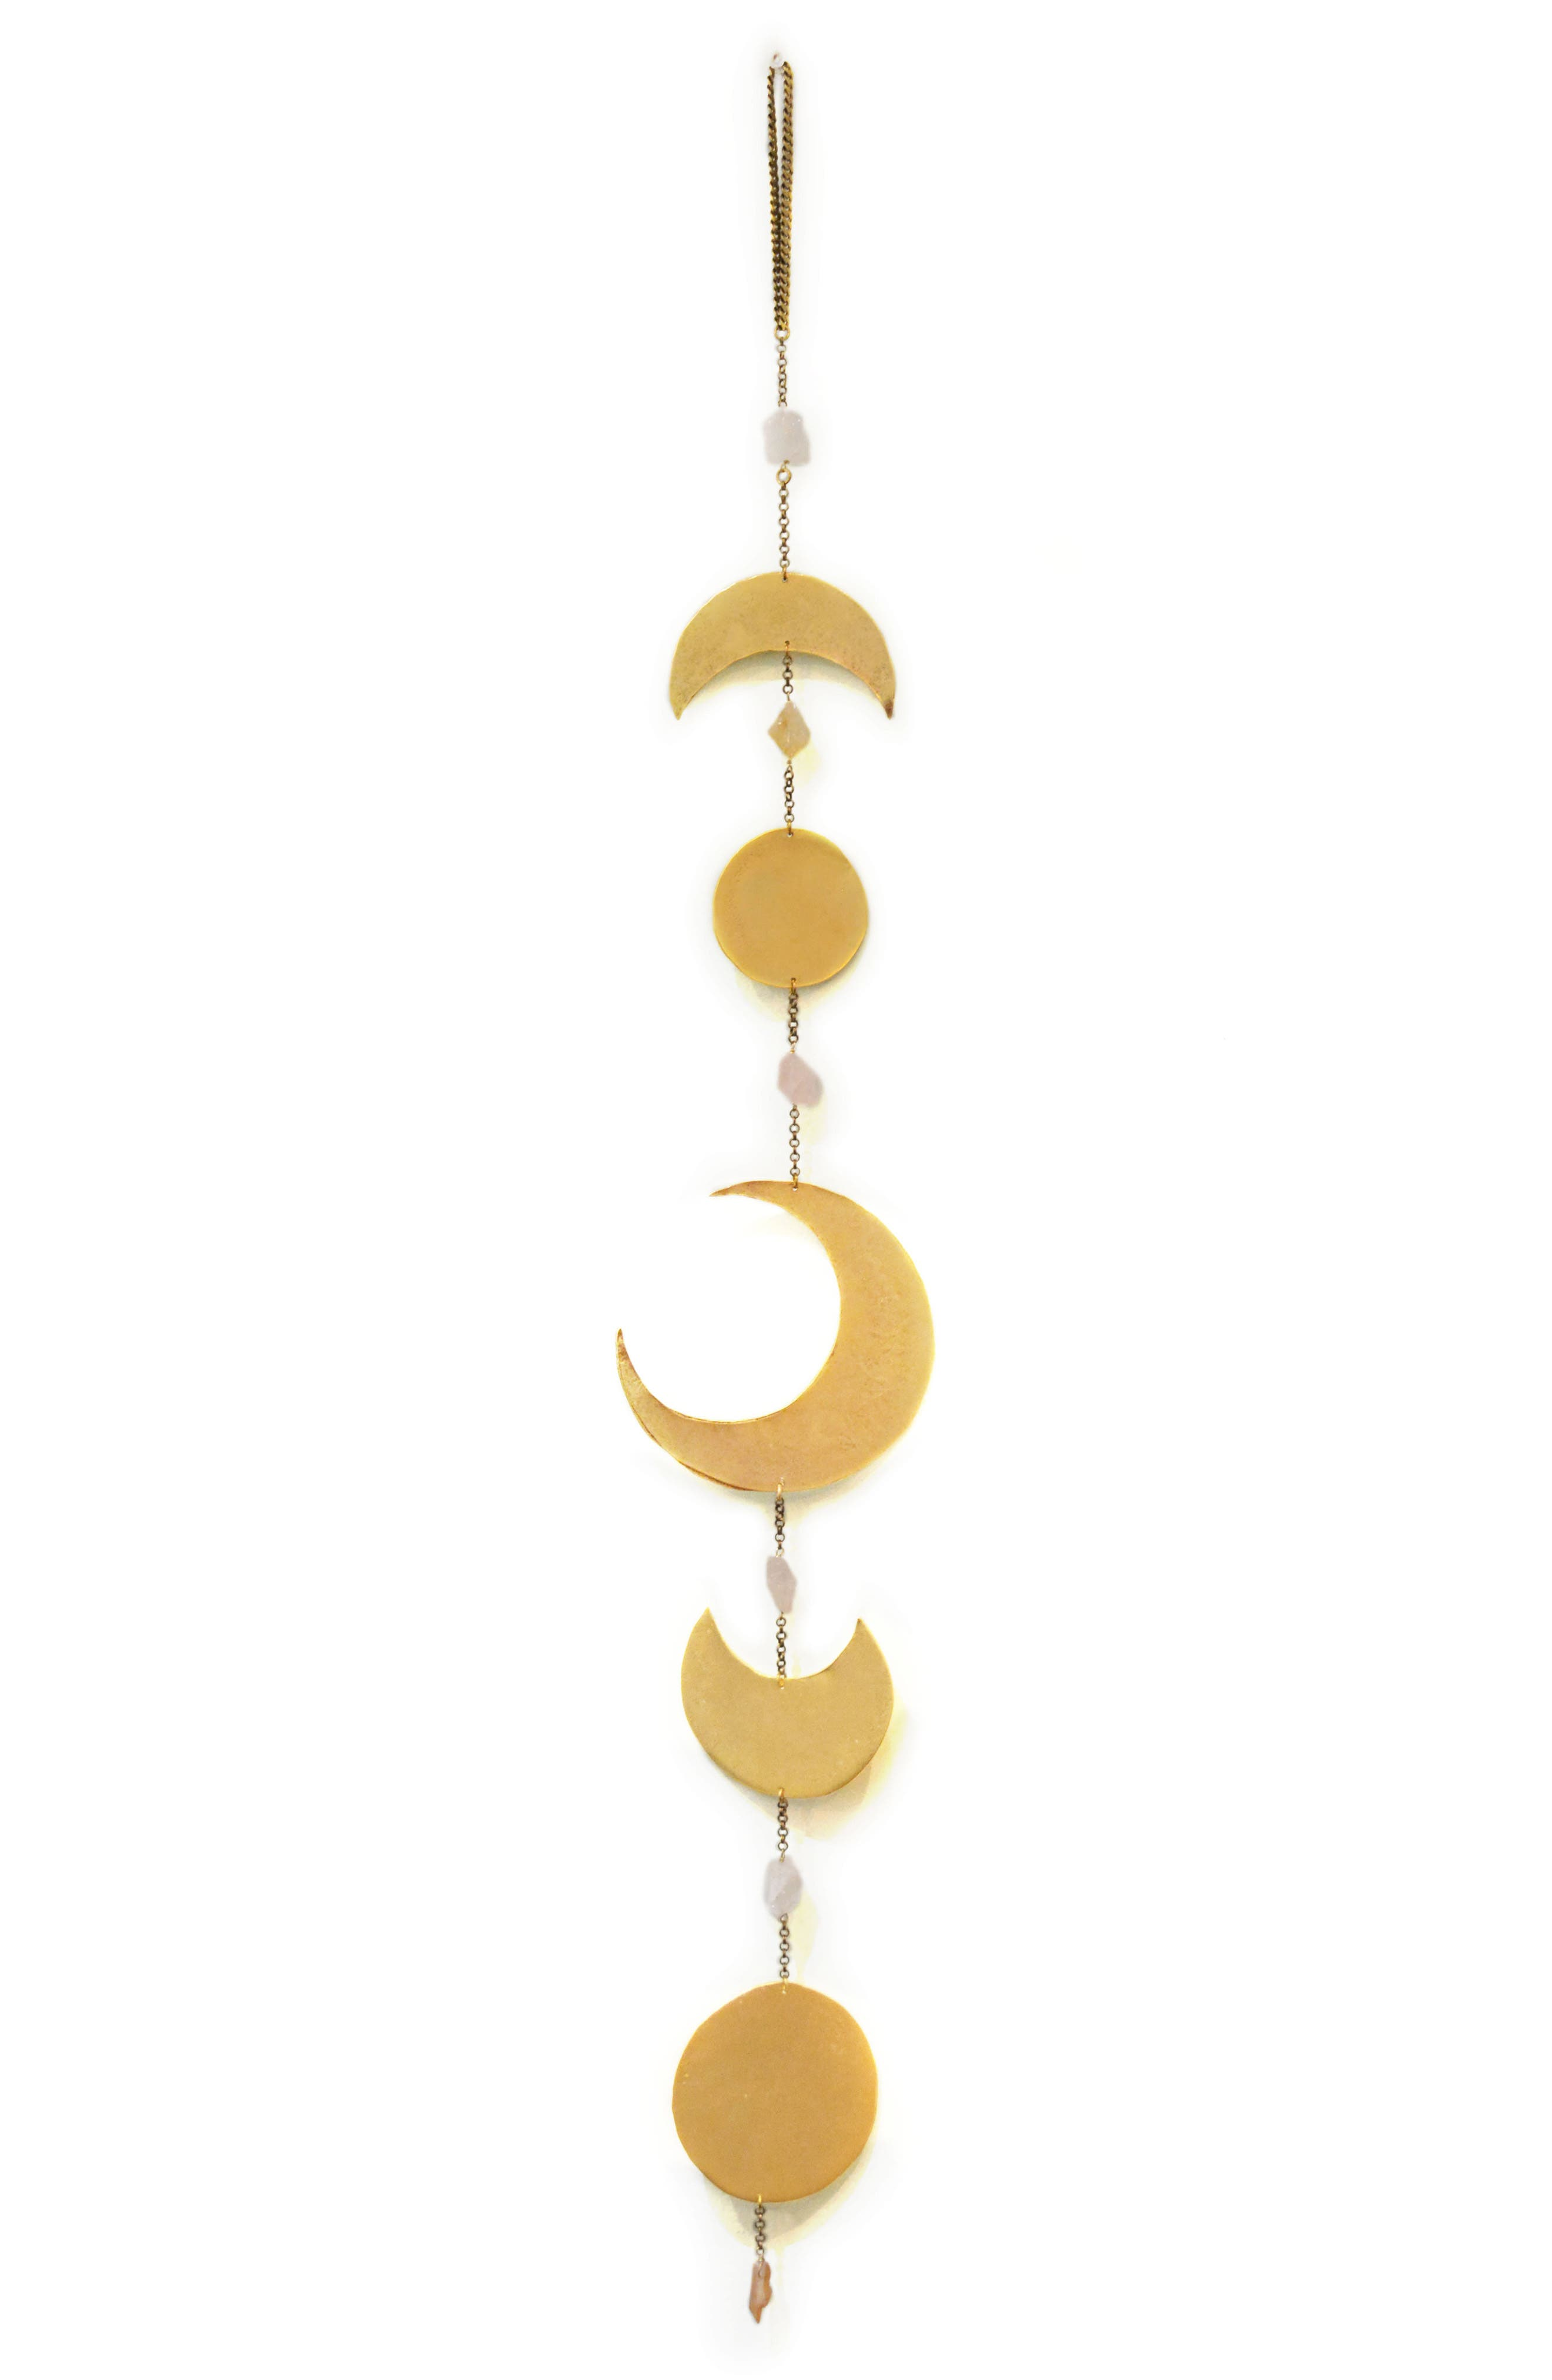 A celestially graceful wall hanging suspends brushed-metal cuts of the moon\\\'s phases, interspersed with milky quartz crystals and tipped with a rosy citrine. Style Name: Ariana Ost Moon Phase Quartz & Citrine Wall Hanging. Style Number: 5747773. Available in stores.